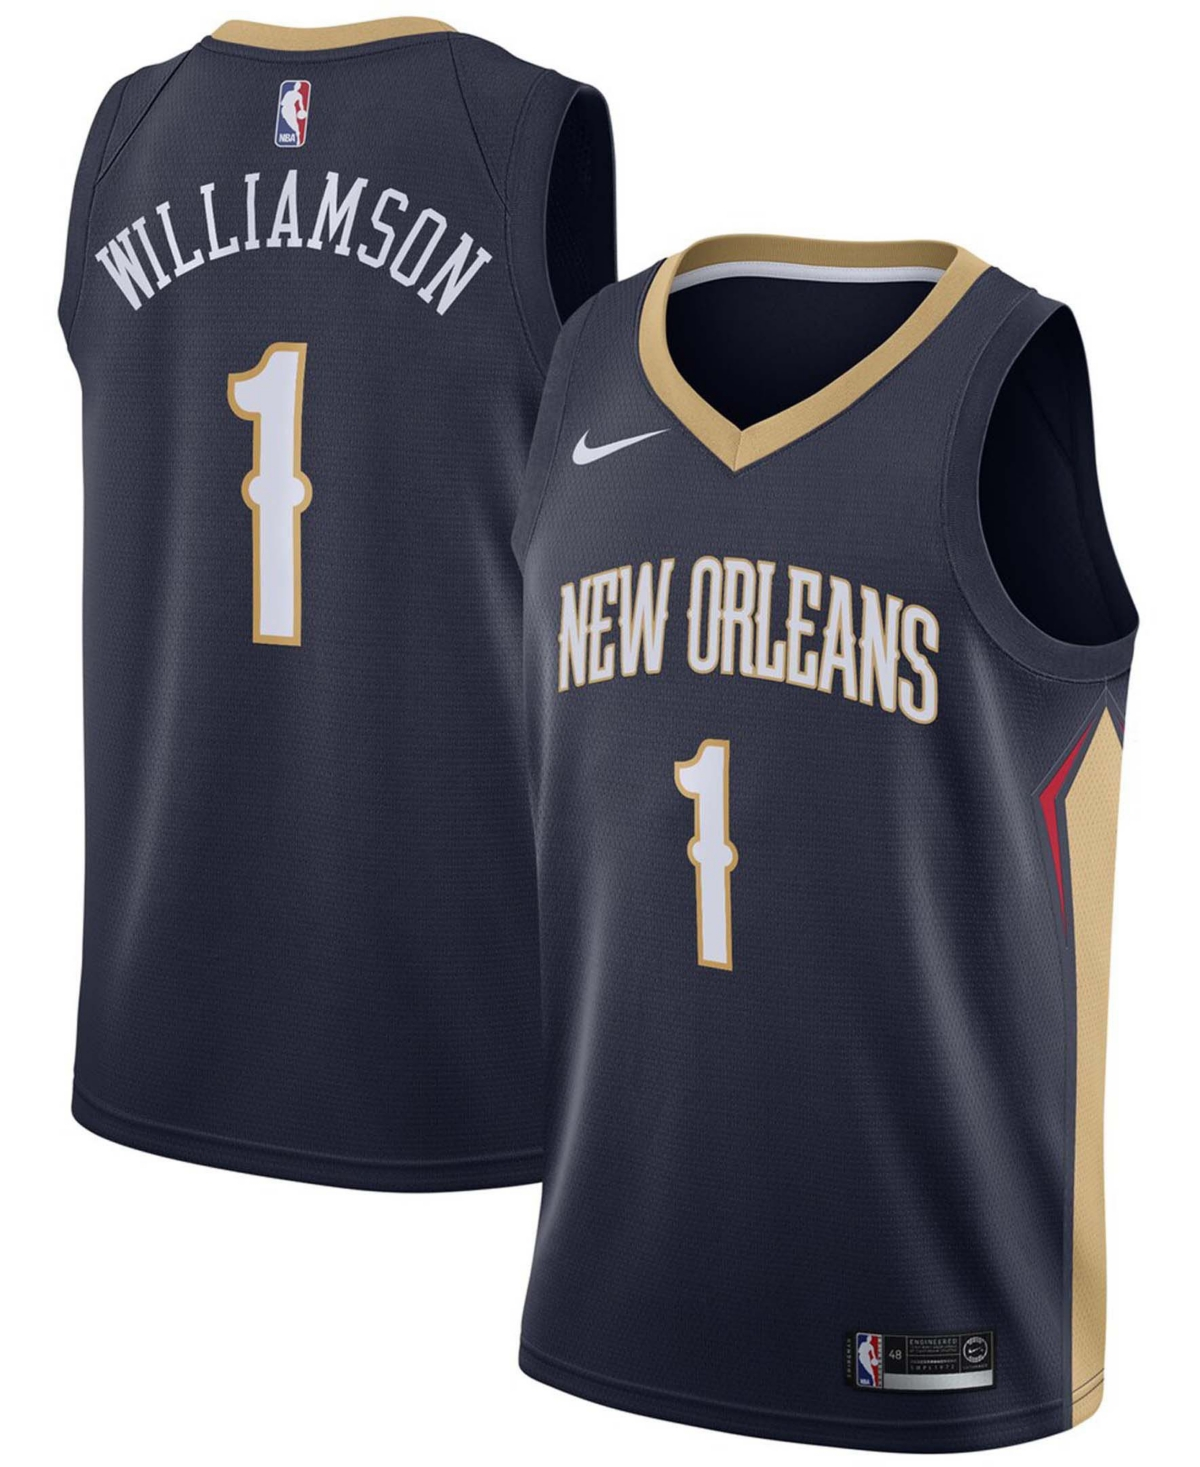 Men's Zion Williamson Navy New Orleans Pelicans 2019 Nba Draft First Round Pick Swingman Jersey - Icon Edition